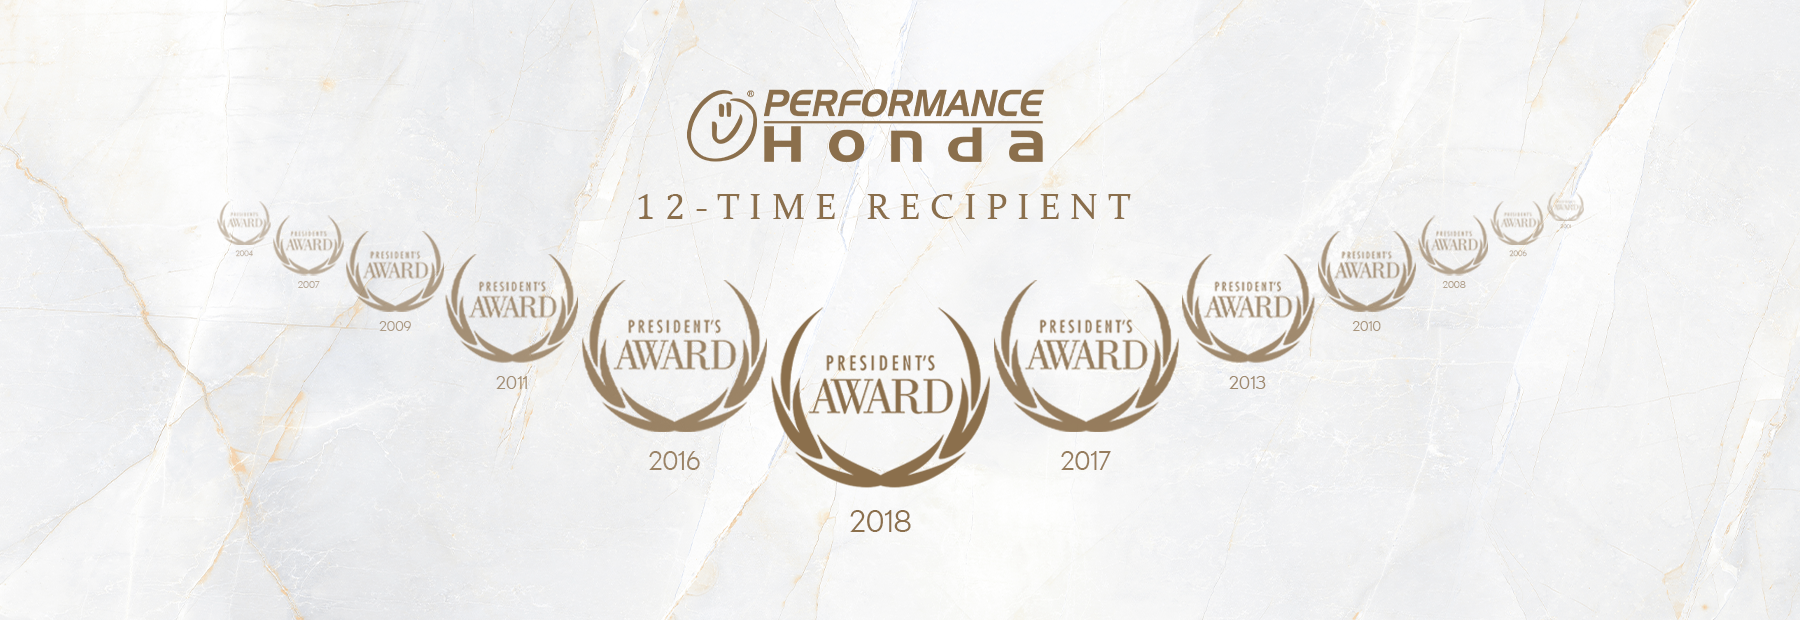 2018-honda-presidents-award-winner